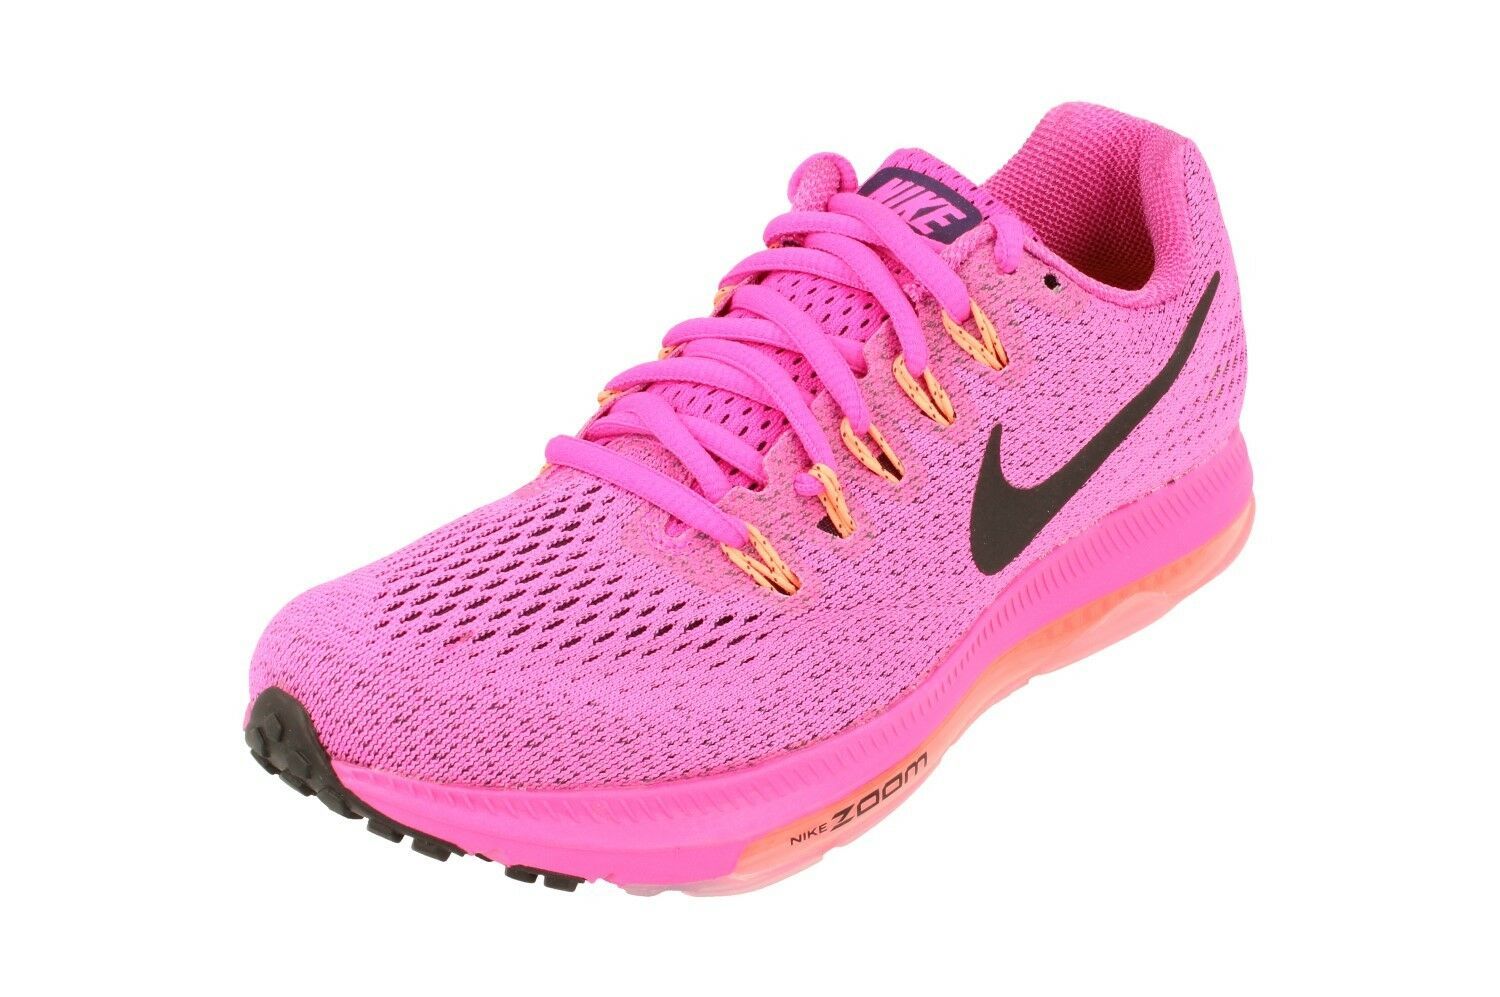 Nike Femme Zoom Trainers All Out faible fonctionnement Trainers Zoom 878671 600 Sneakers chaussures 3dd88d